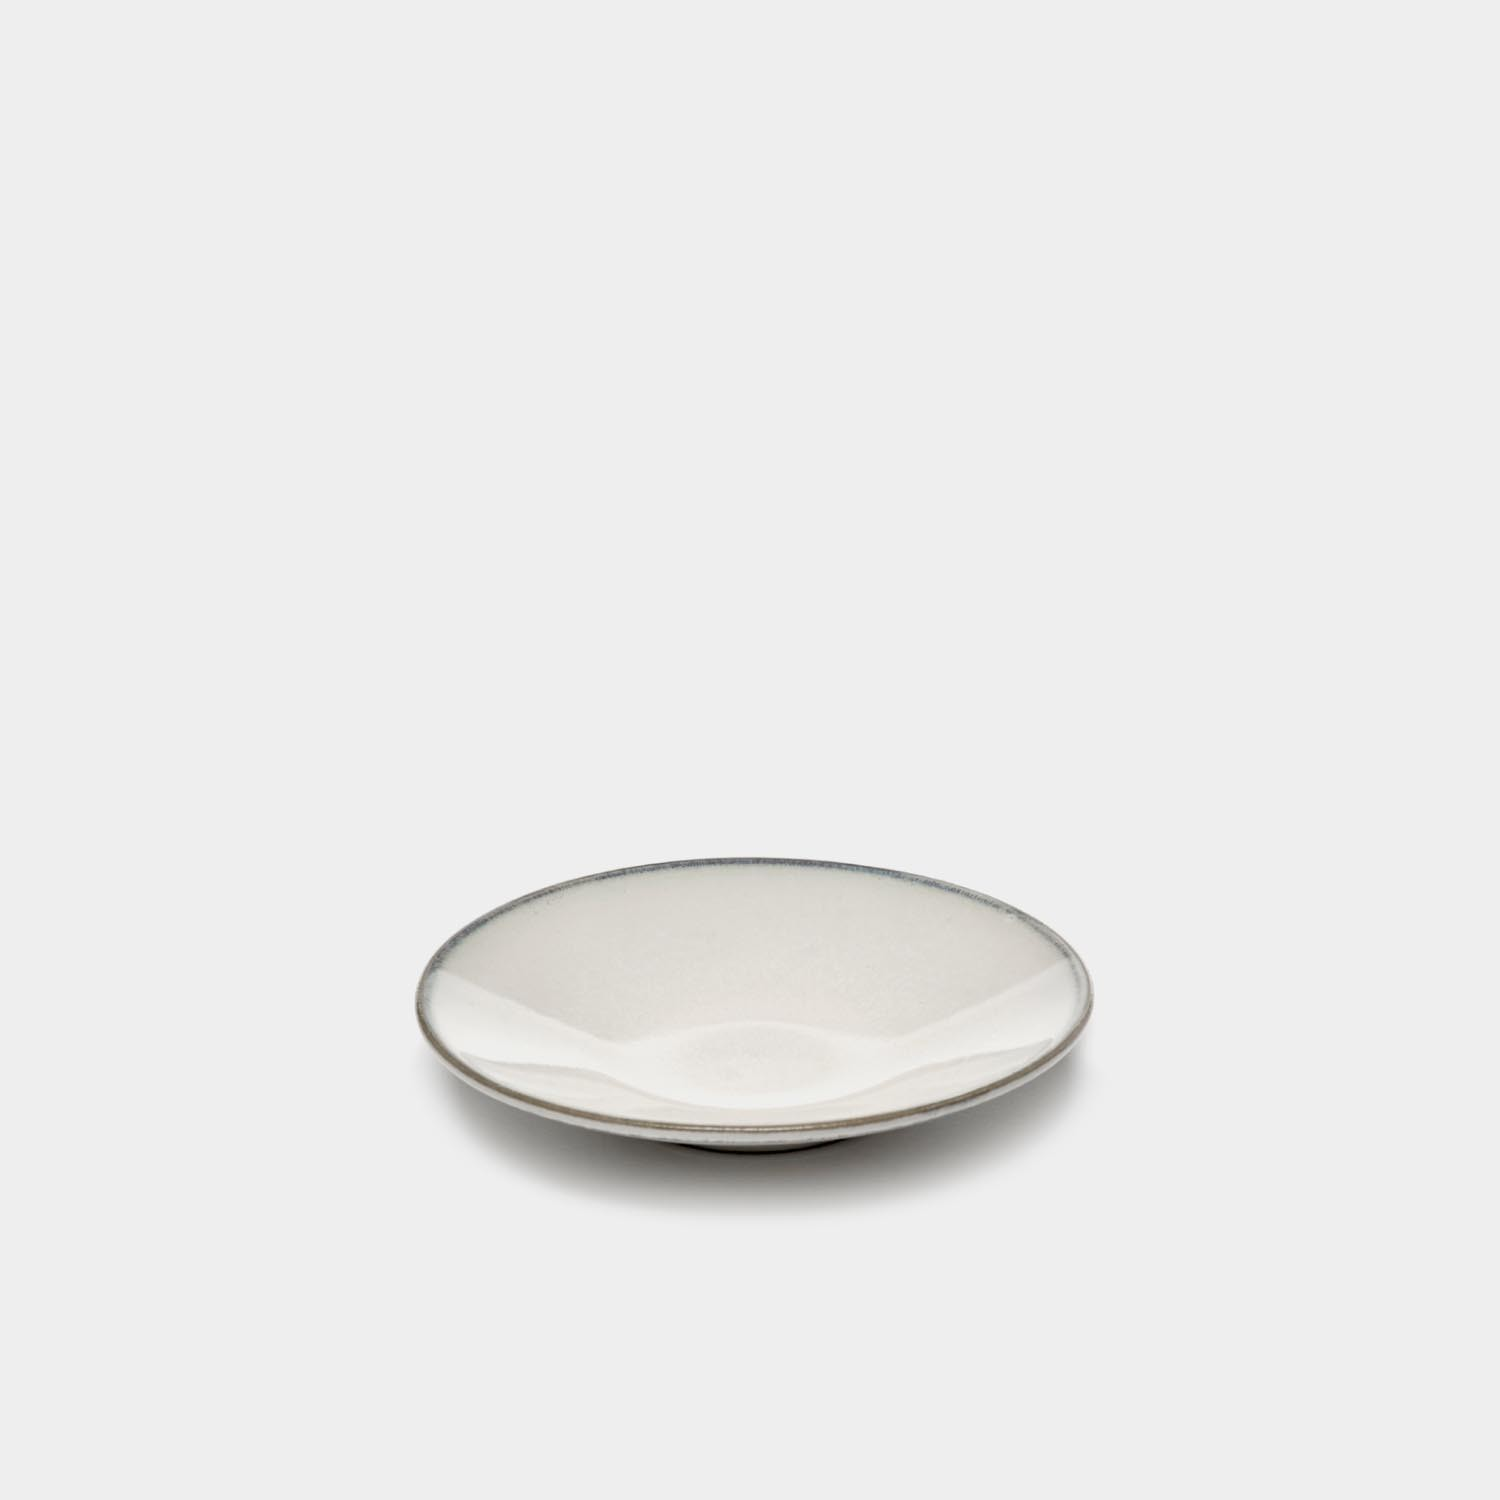 Saucer for Coffee Cup Inku, White